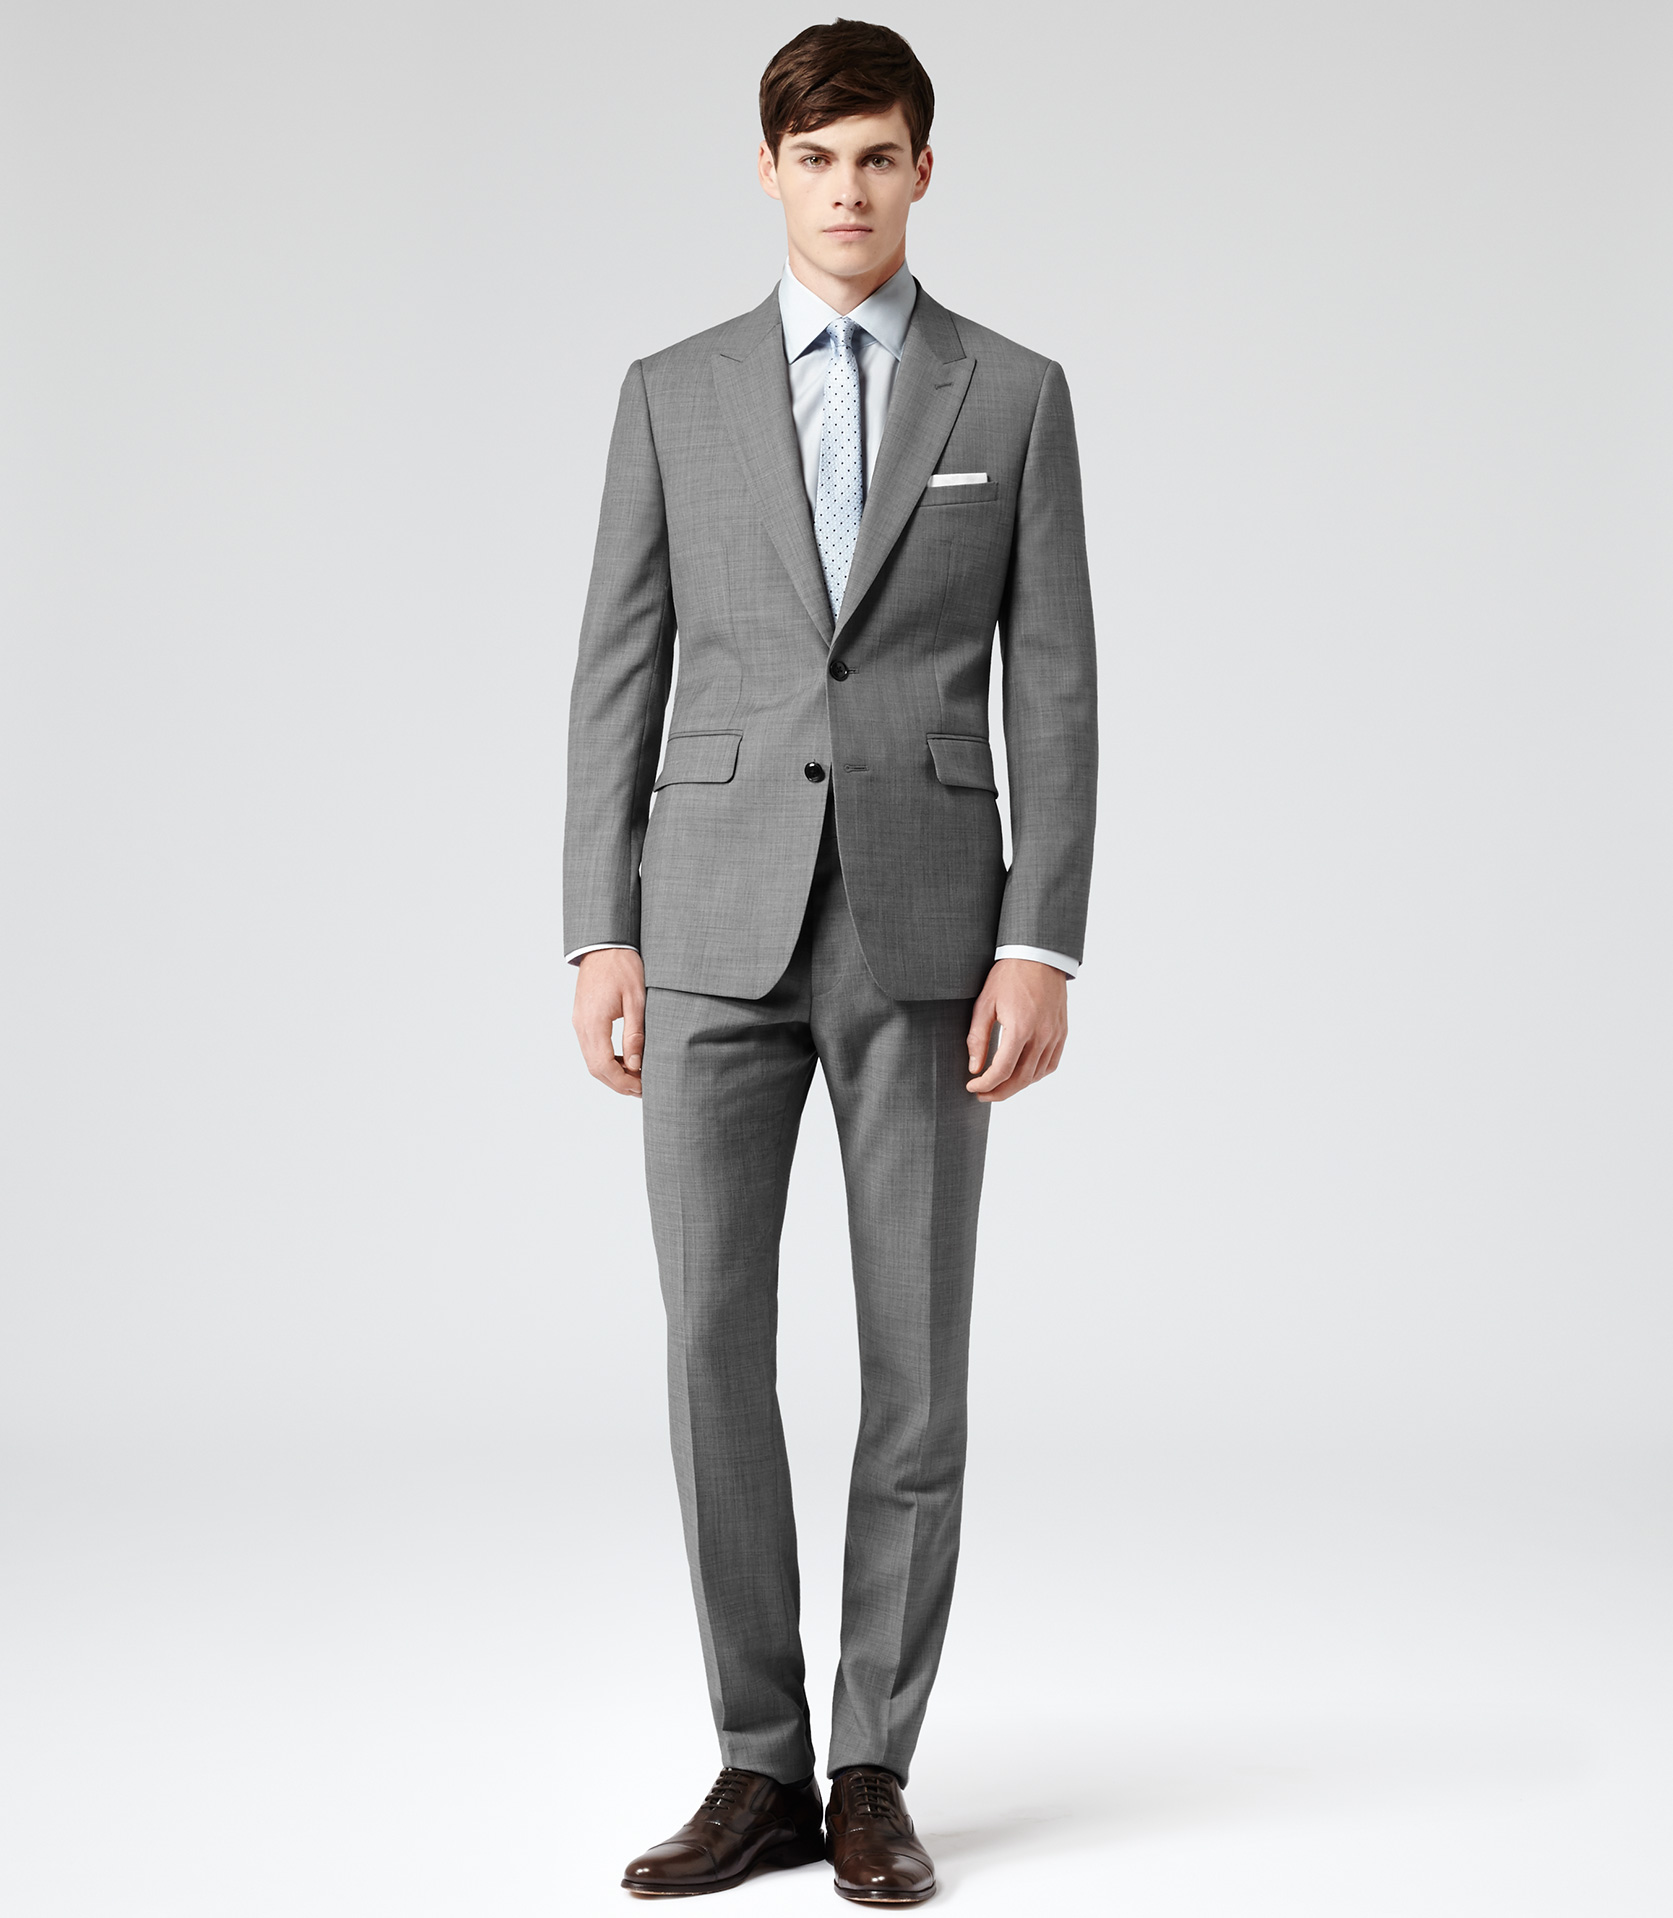 Light Grey Suit. Light grey suits are an excellent choice for formal and casual funon.ml are youthful, modern and sharp – but as with all suits, tailoring is essential.